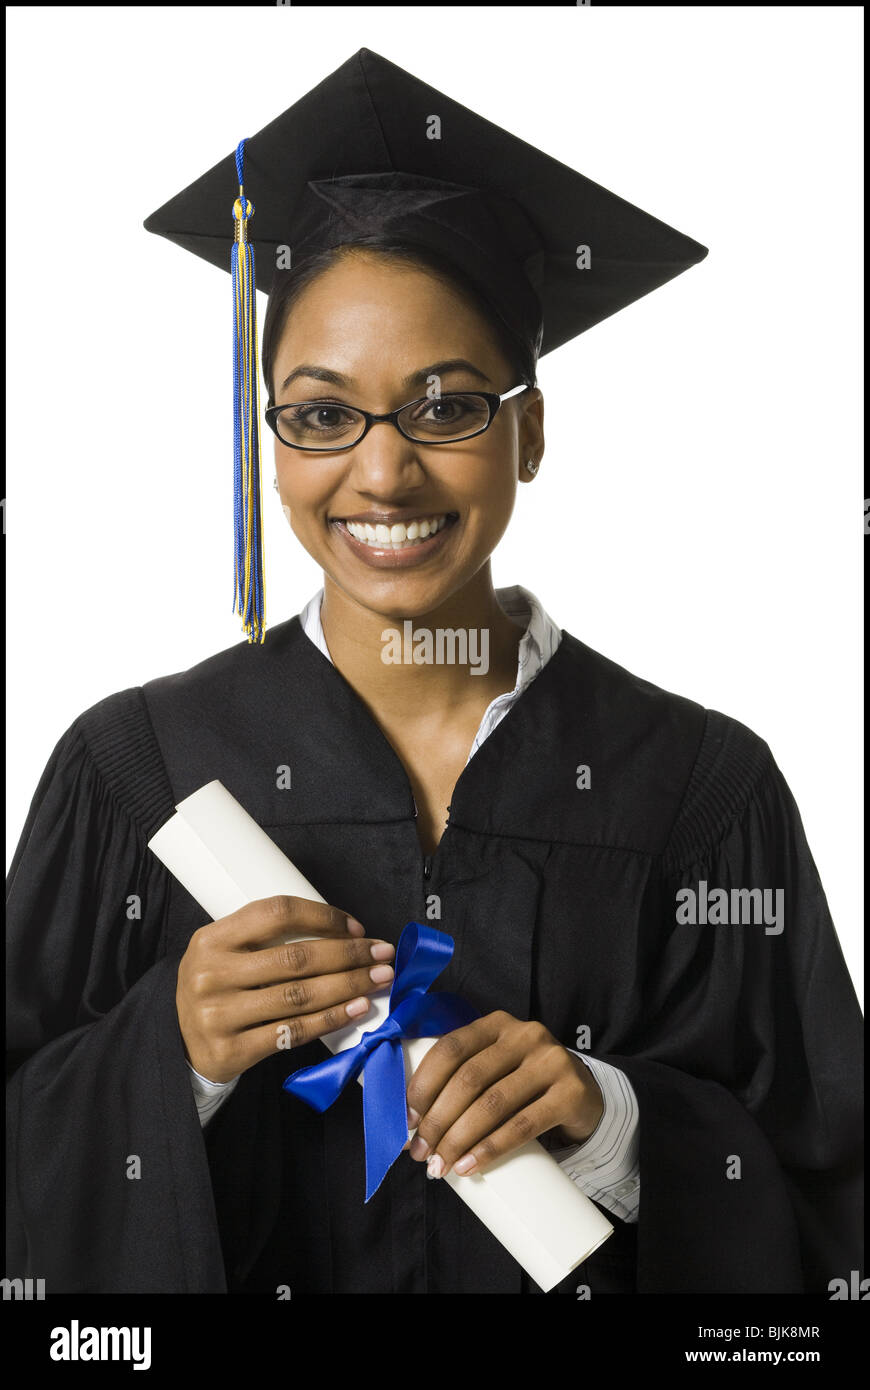 Gowns Upper Stock Photos & Gowns Upper Stock Images - Alamy